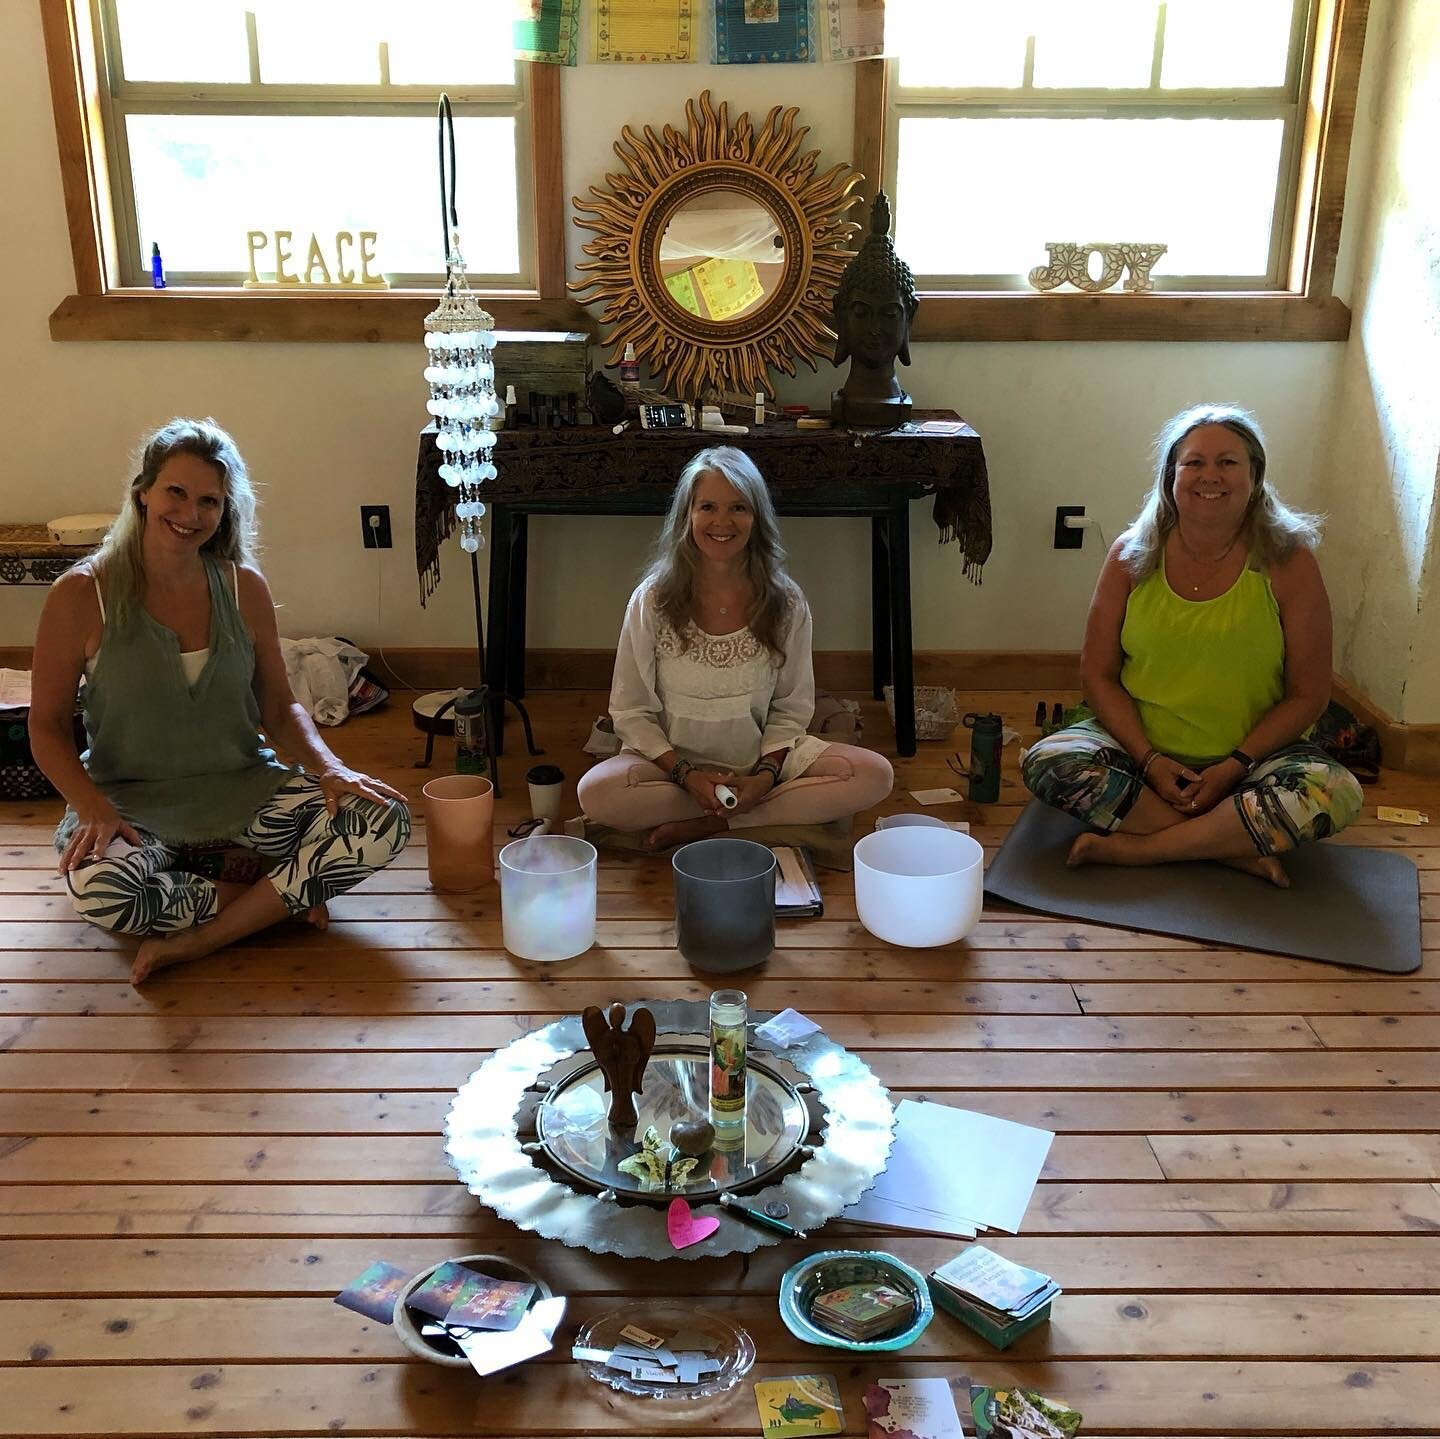 The Awakened Heart Journey 6th Annual Women S Yoga Retreat In Vernonia Springs August 7 9 2020 Julie Bertagna Yoga Bend Or Yoga Teacher